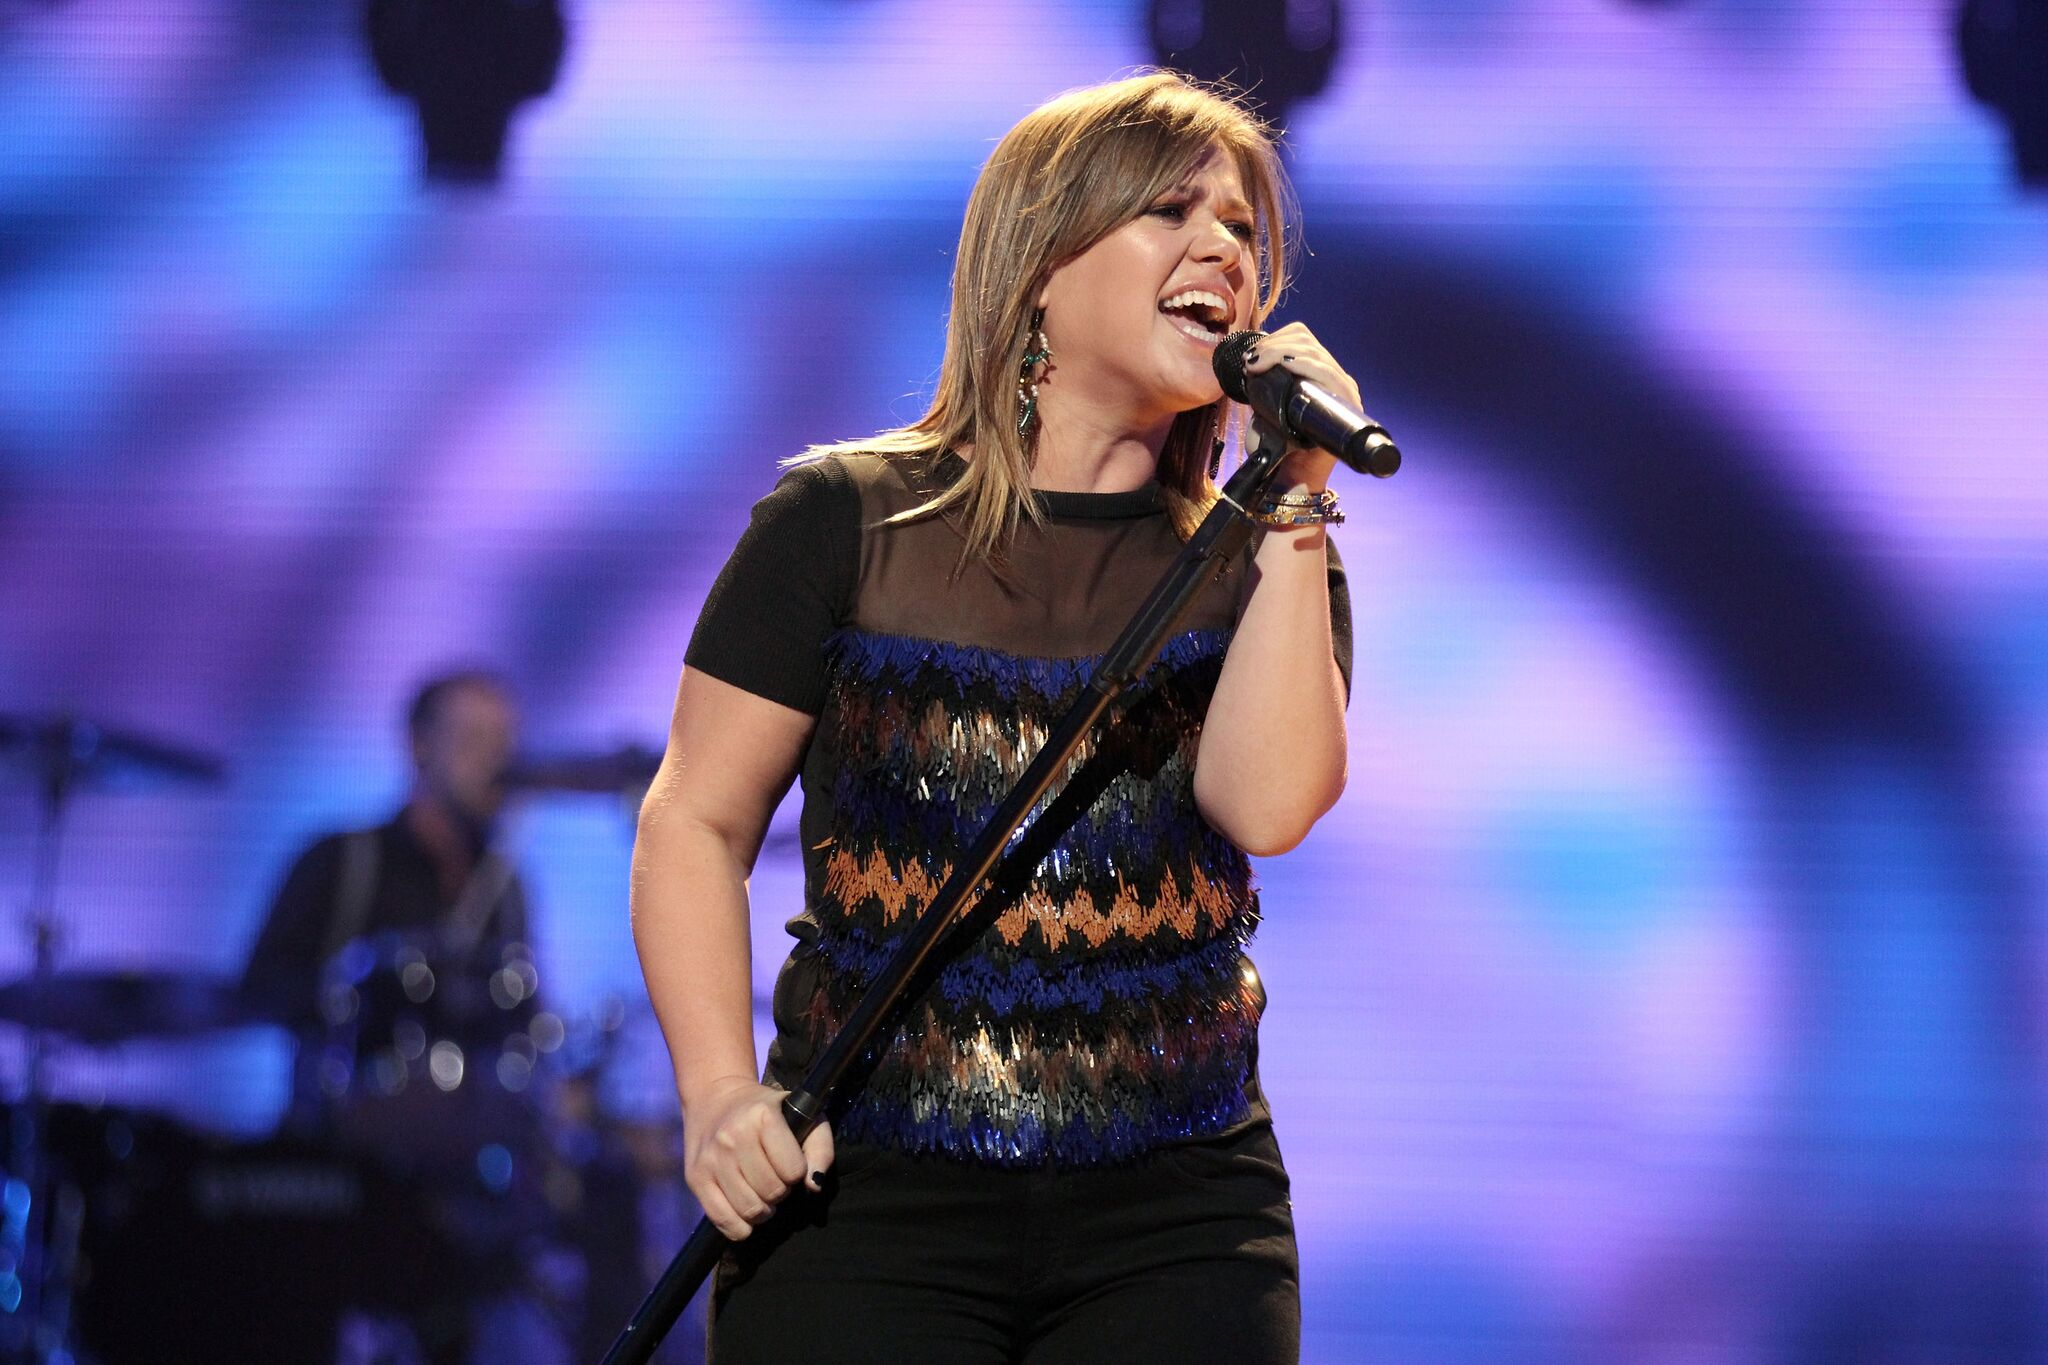 Kelly Clarkson performs onstage at the iHeartRadio Music Festival | Getty Images